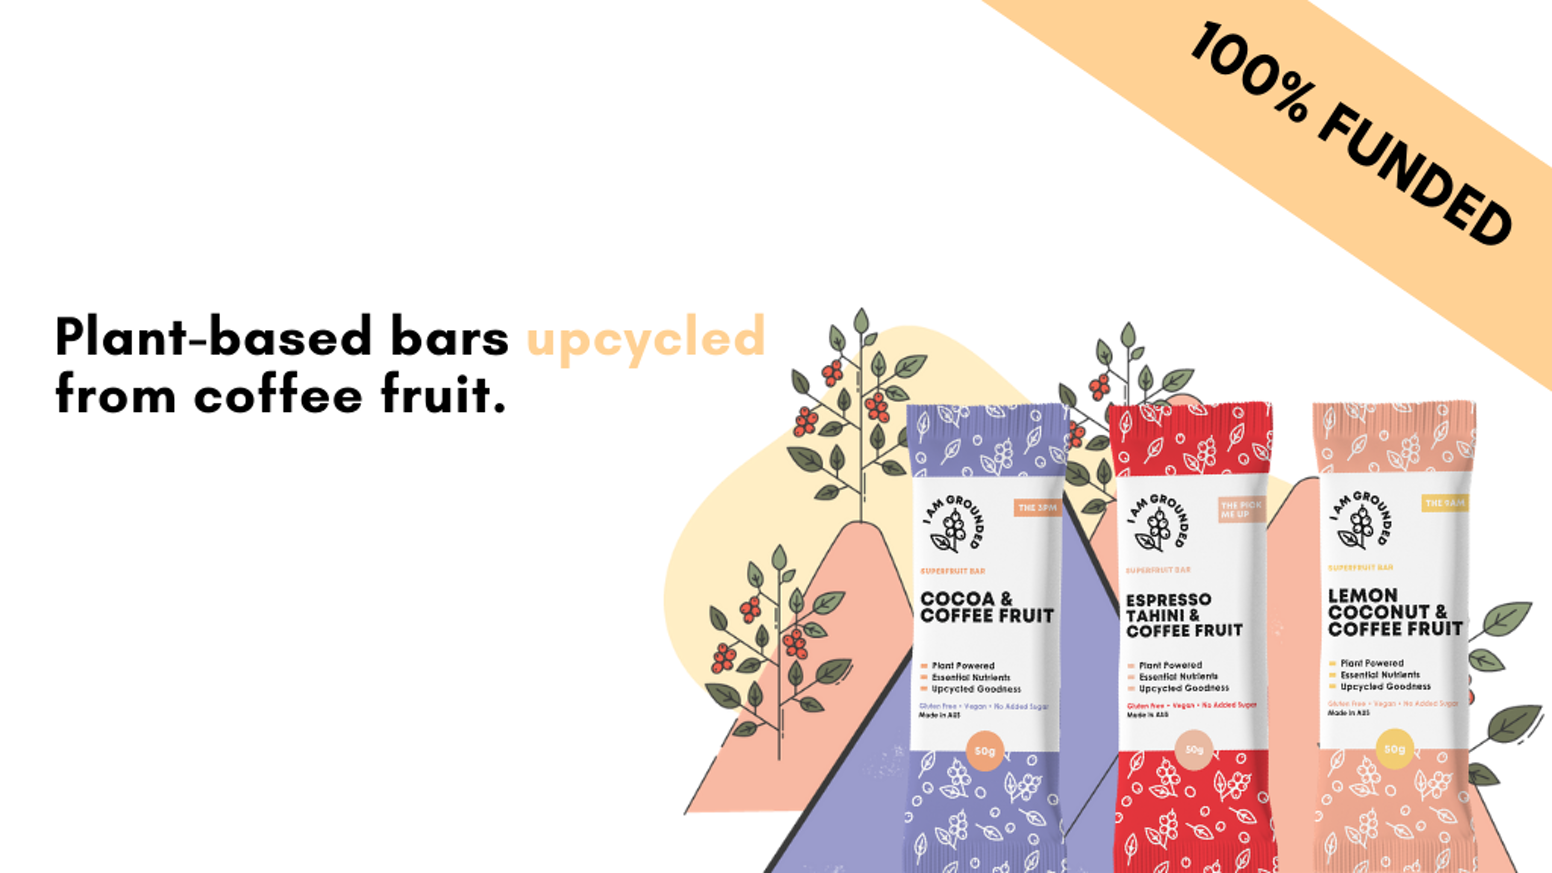 100% natural plant-based bars containing pure coffee fruit extract | Upcycled for impact.